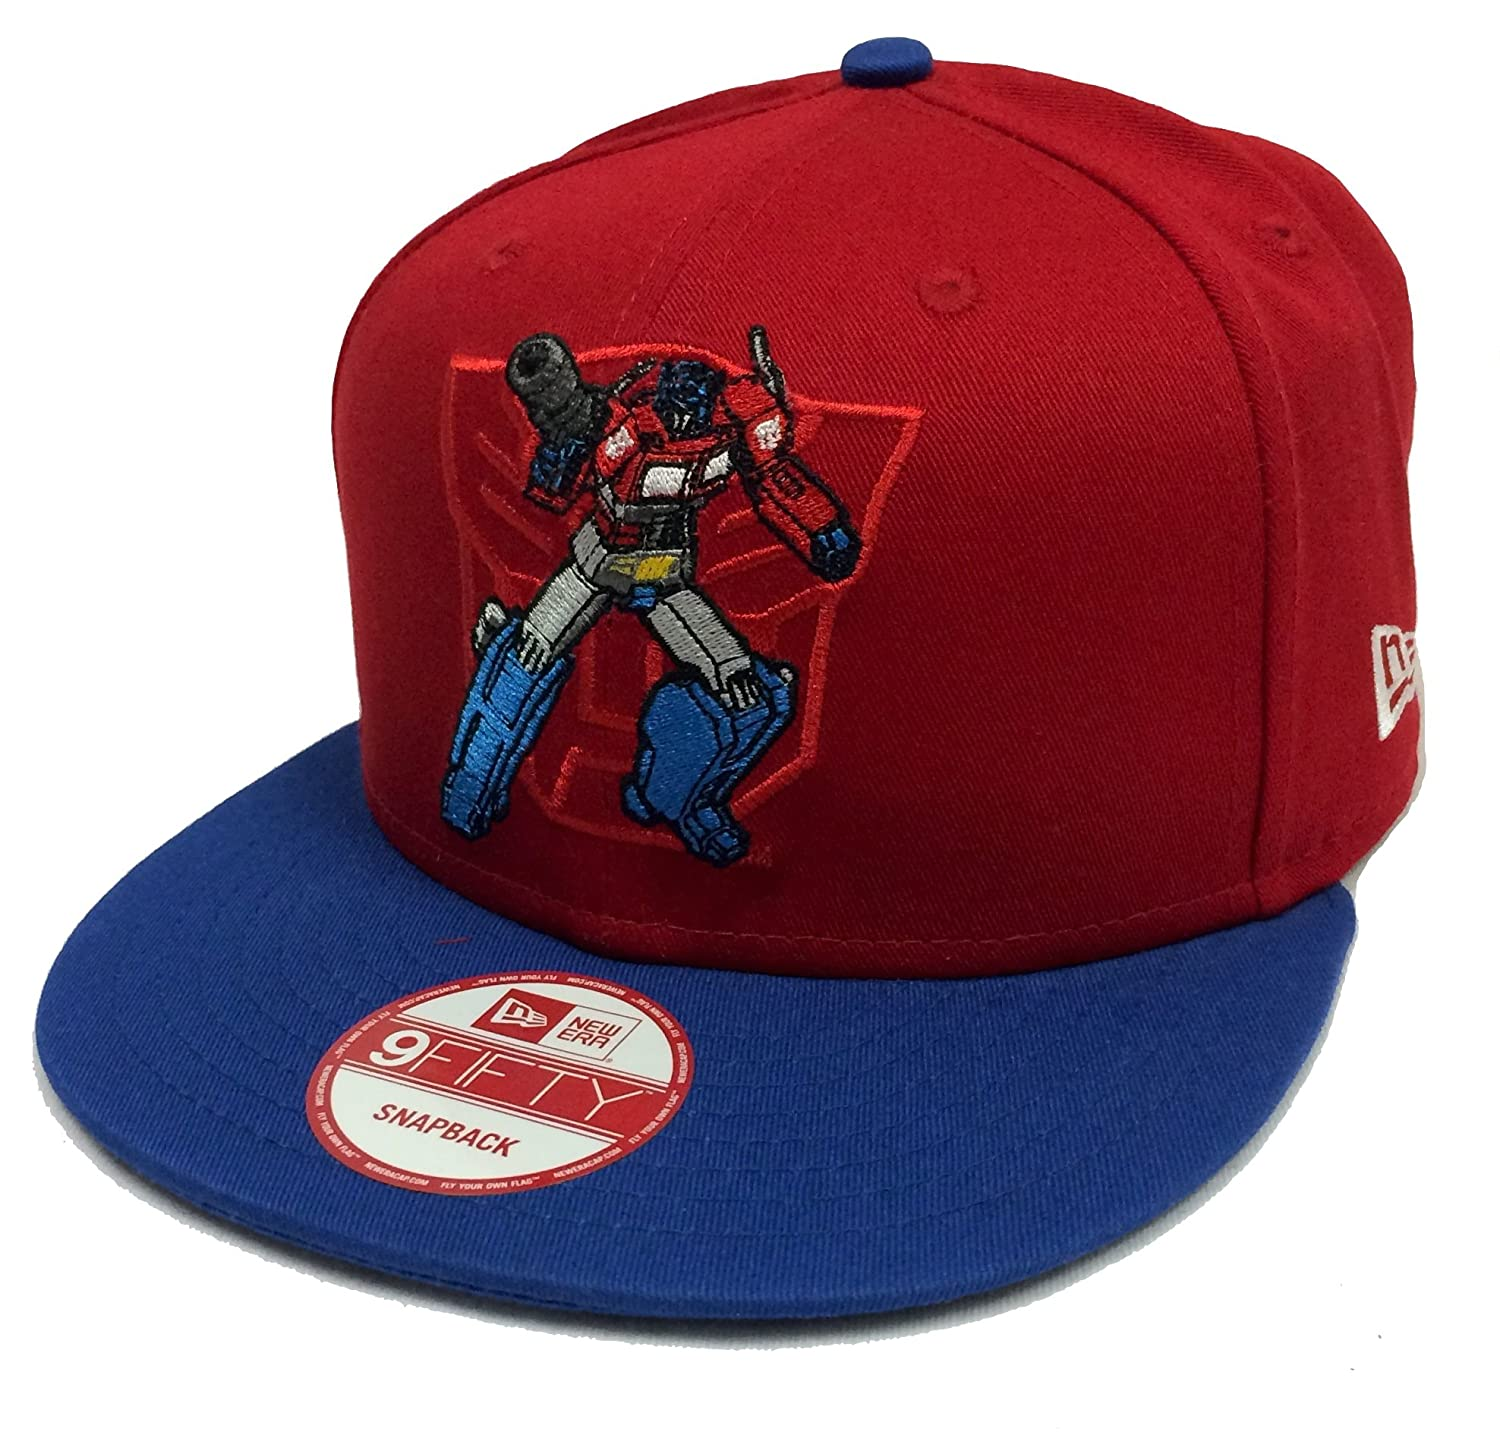 e438b9fce02 New Era 9Fifty Action Arch Transformers Optimus Prime Red   Blue Snapback   Amazon.in  Clothing   Accessories